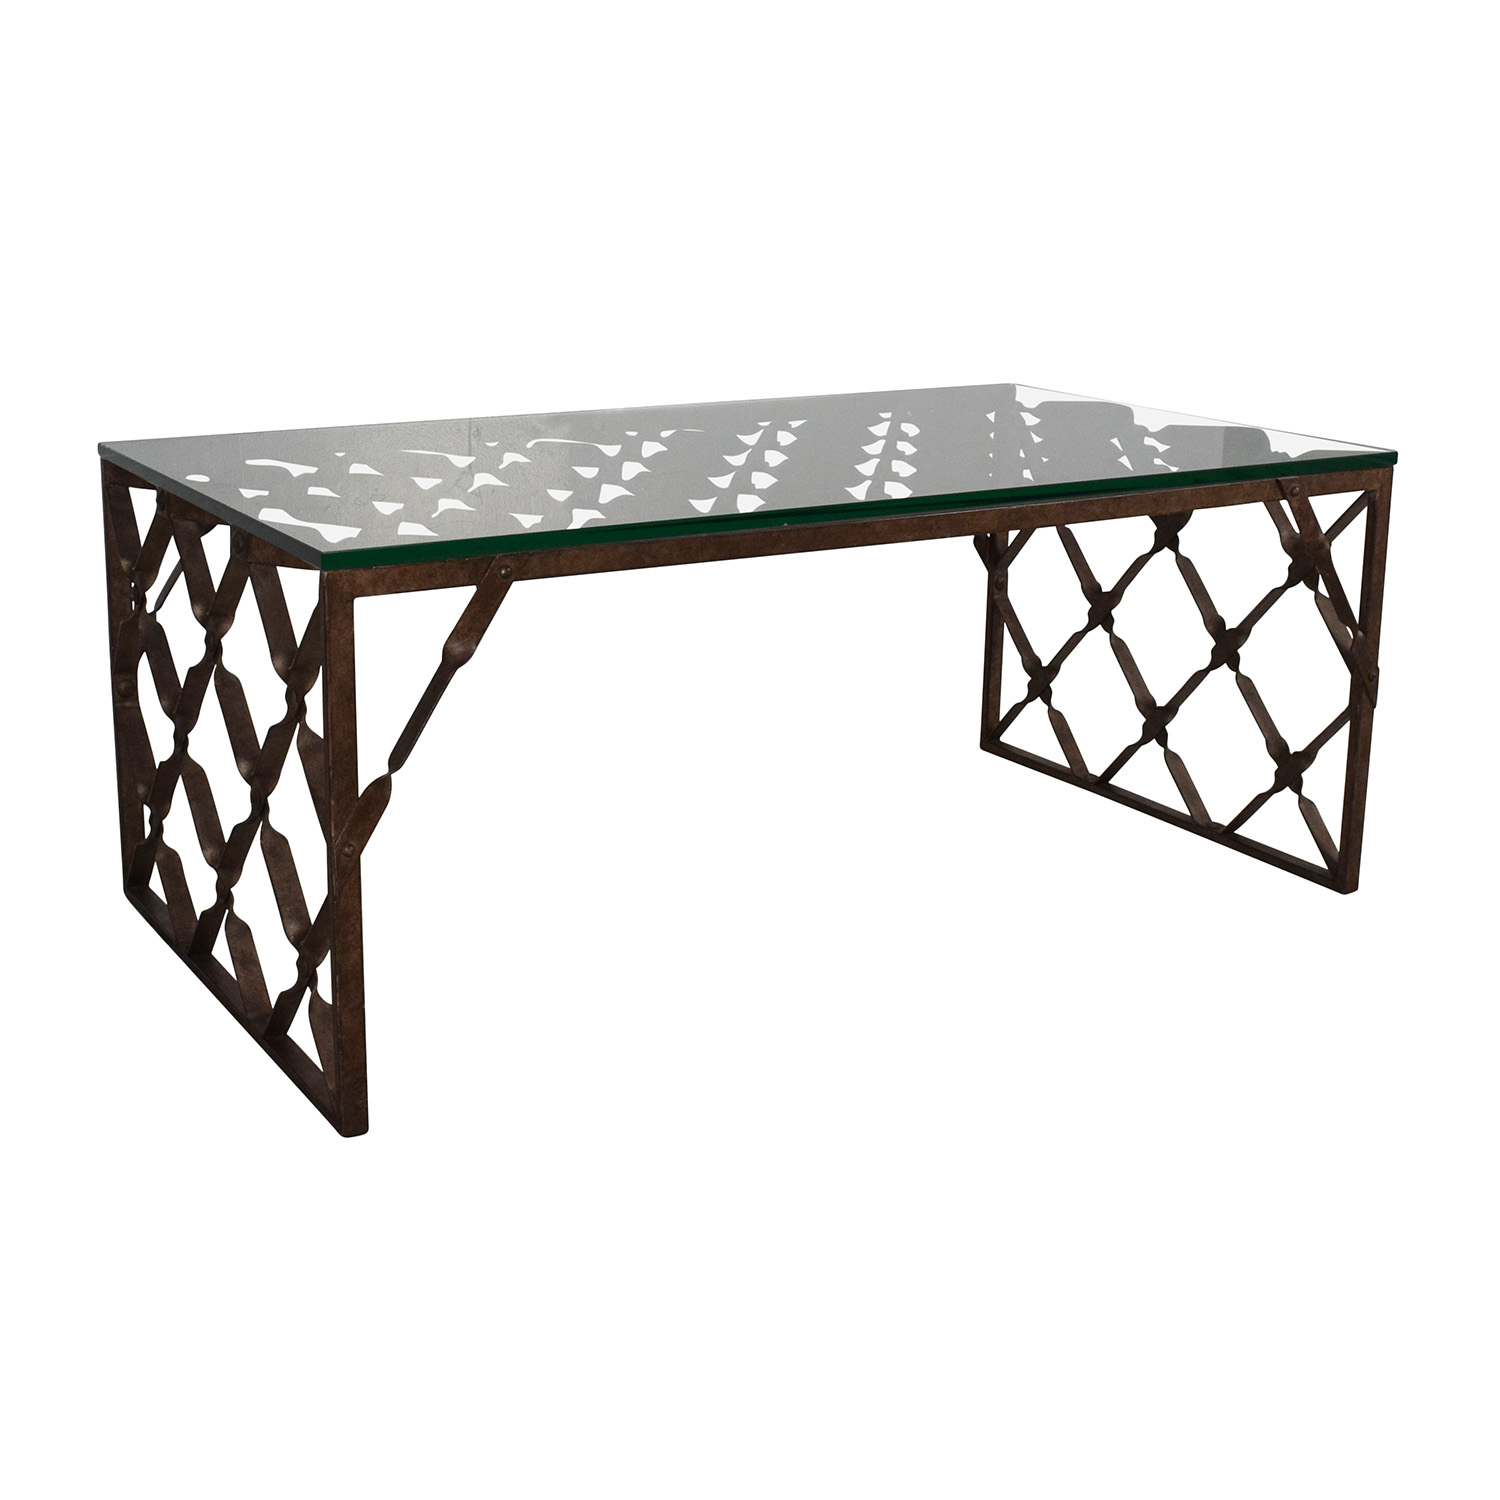 82 Off Crate And Barrel Crate Barrel Glass Top Metalwork Coffee Table Tables: coffee tables glass top